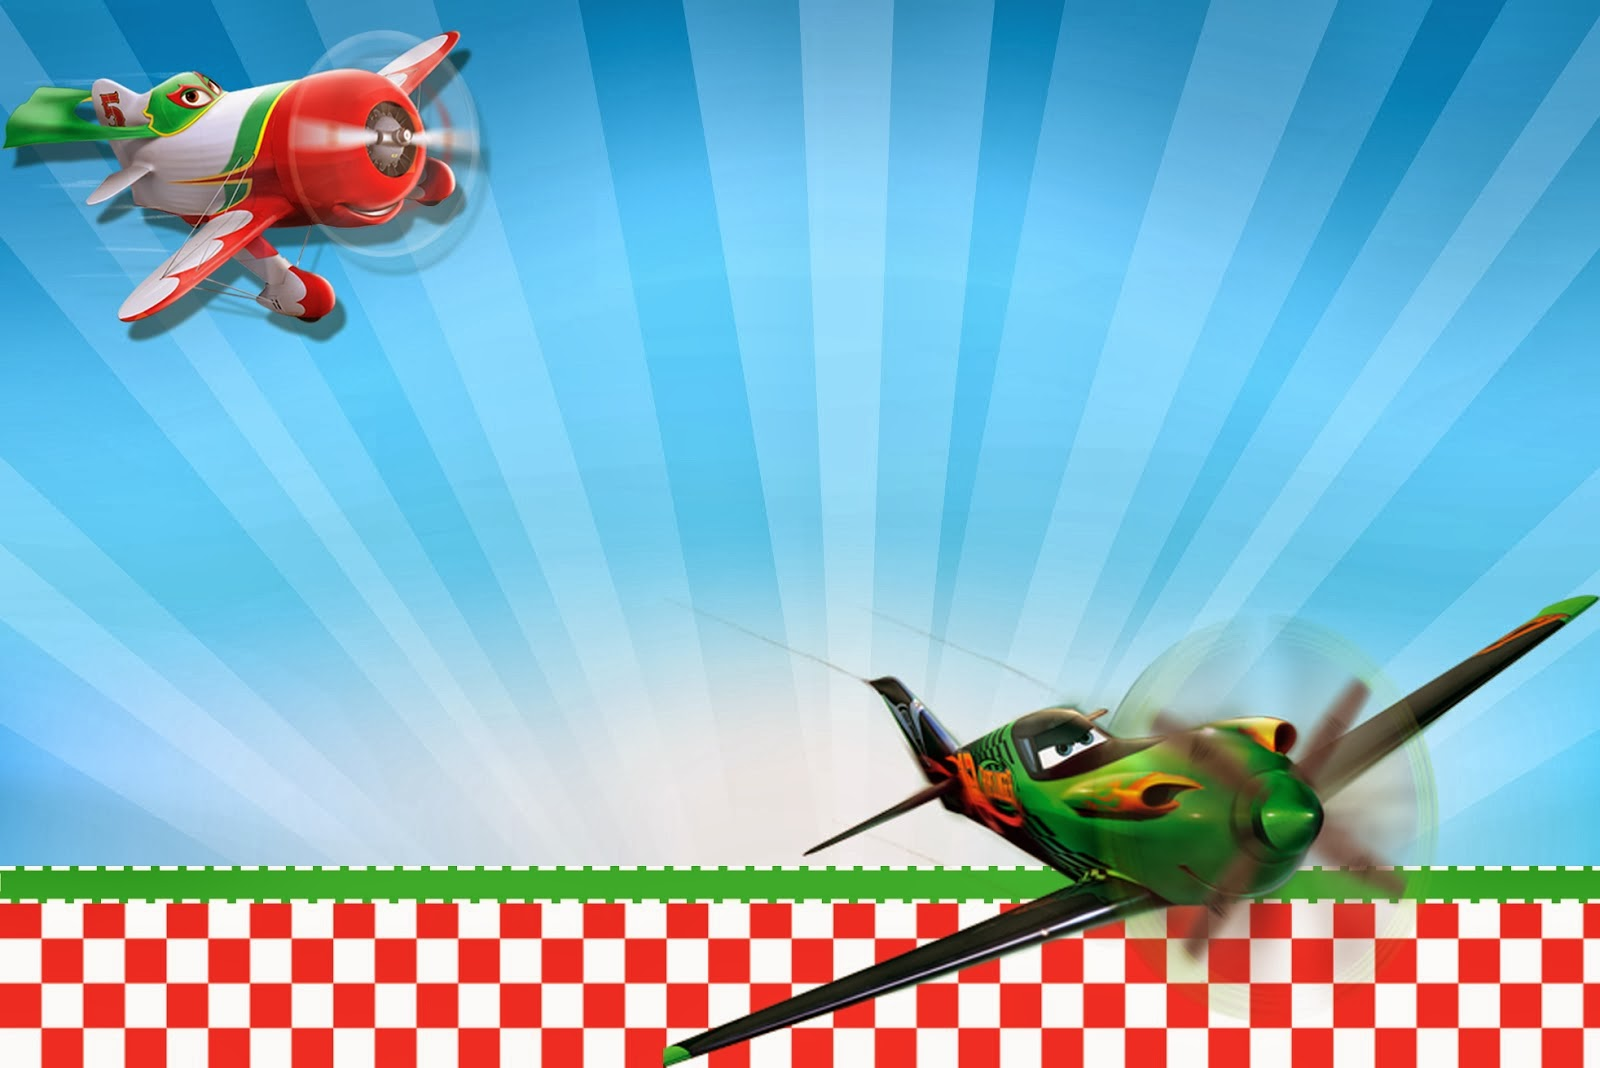 Planes (Disney): Free Printable Cards or Invitations. | Is it for PARTIES? Is it FREE? Is it ...